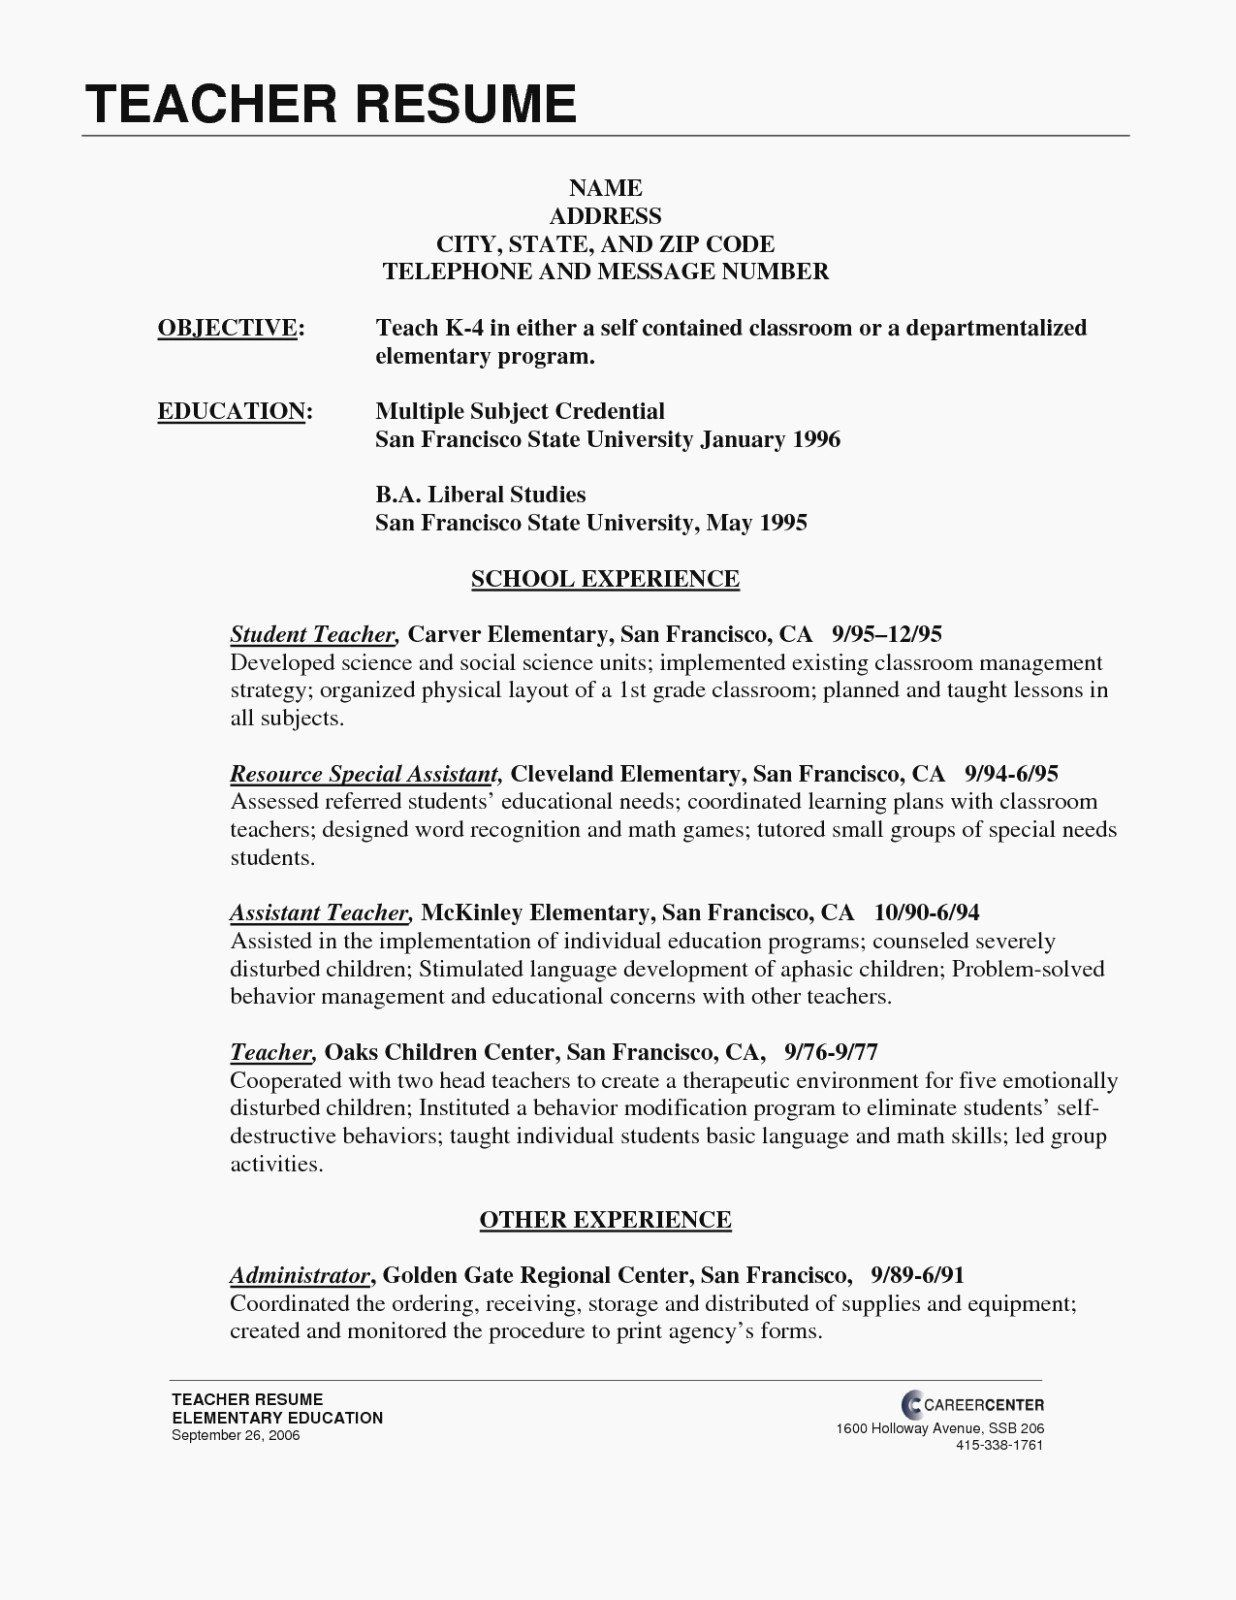 23 Math Teacher Resume Examples in 2020 Teacher resume